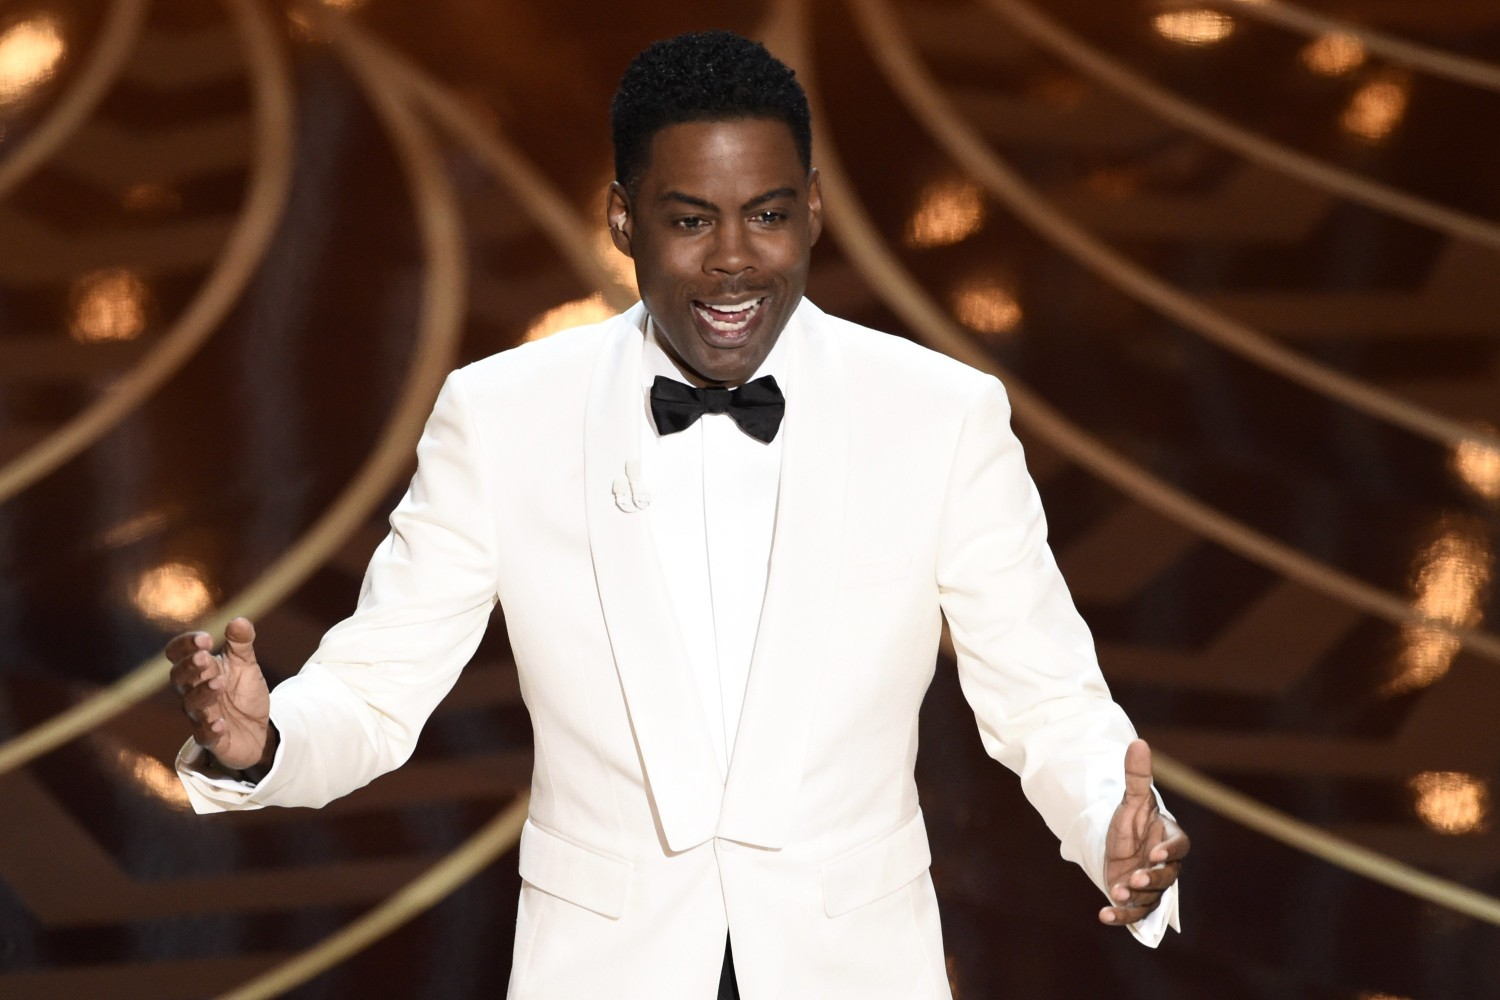 Jude Law 9375342 furthermore Oscar as well Ivanka Trump Feet 2185777 moreover Birdman Grand Budapest Hotel Lead 2015 Oscar Nominees additionally Oscars Review Rise Fall Host Chris Rock N527806. on oscar nominations and winners history